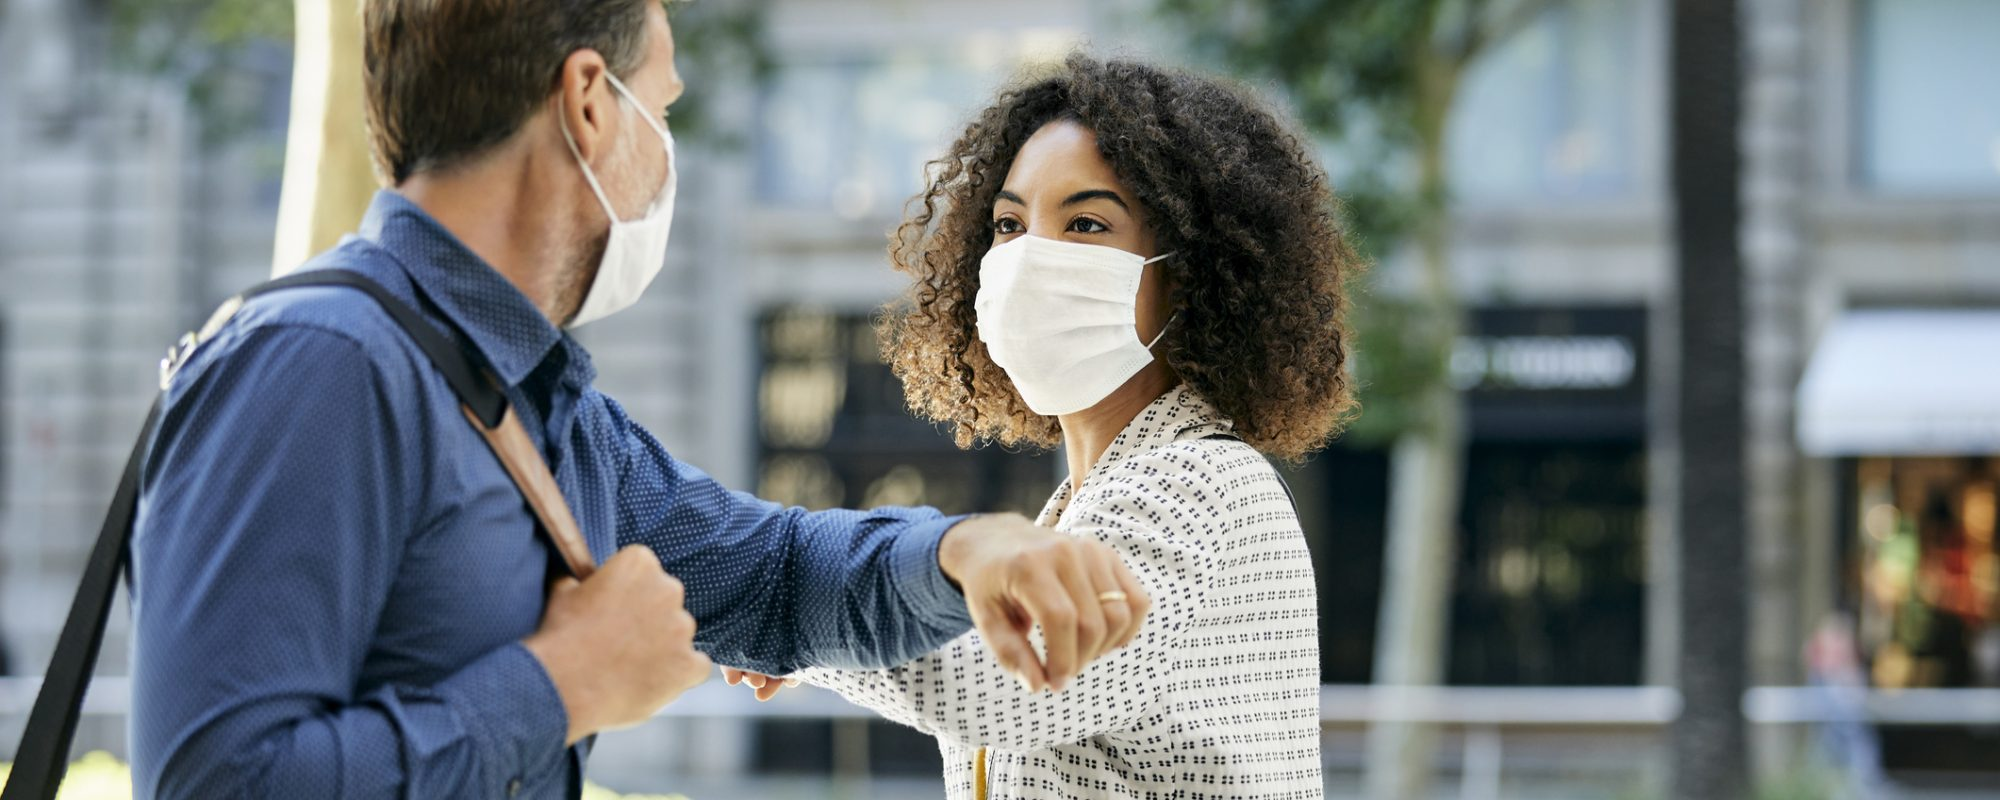 Business people greeting in city. Male and female entrepreneurs talking while avoiding handshake during pandemic. They are maintaining social distance.